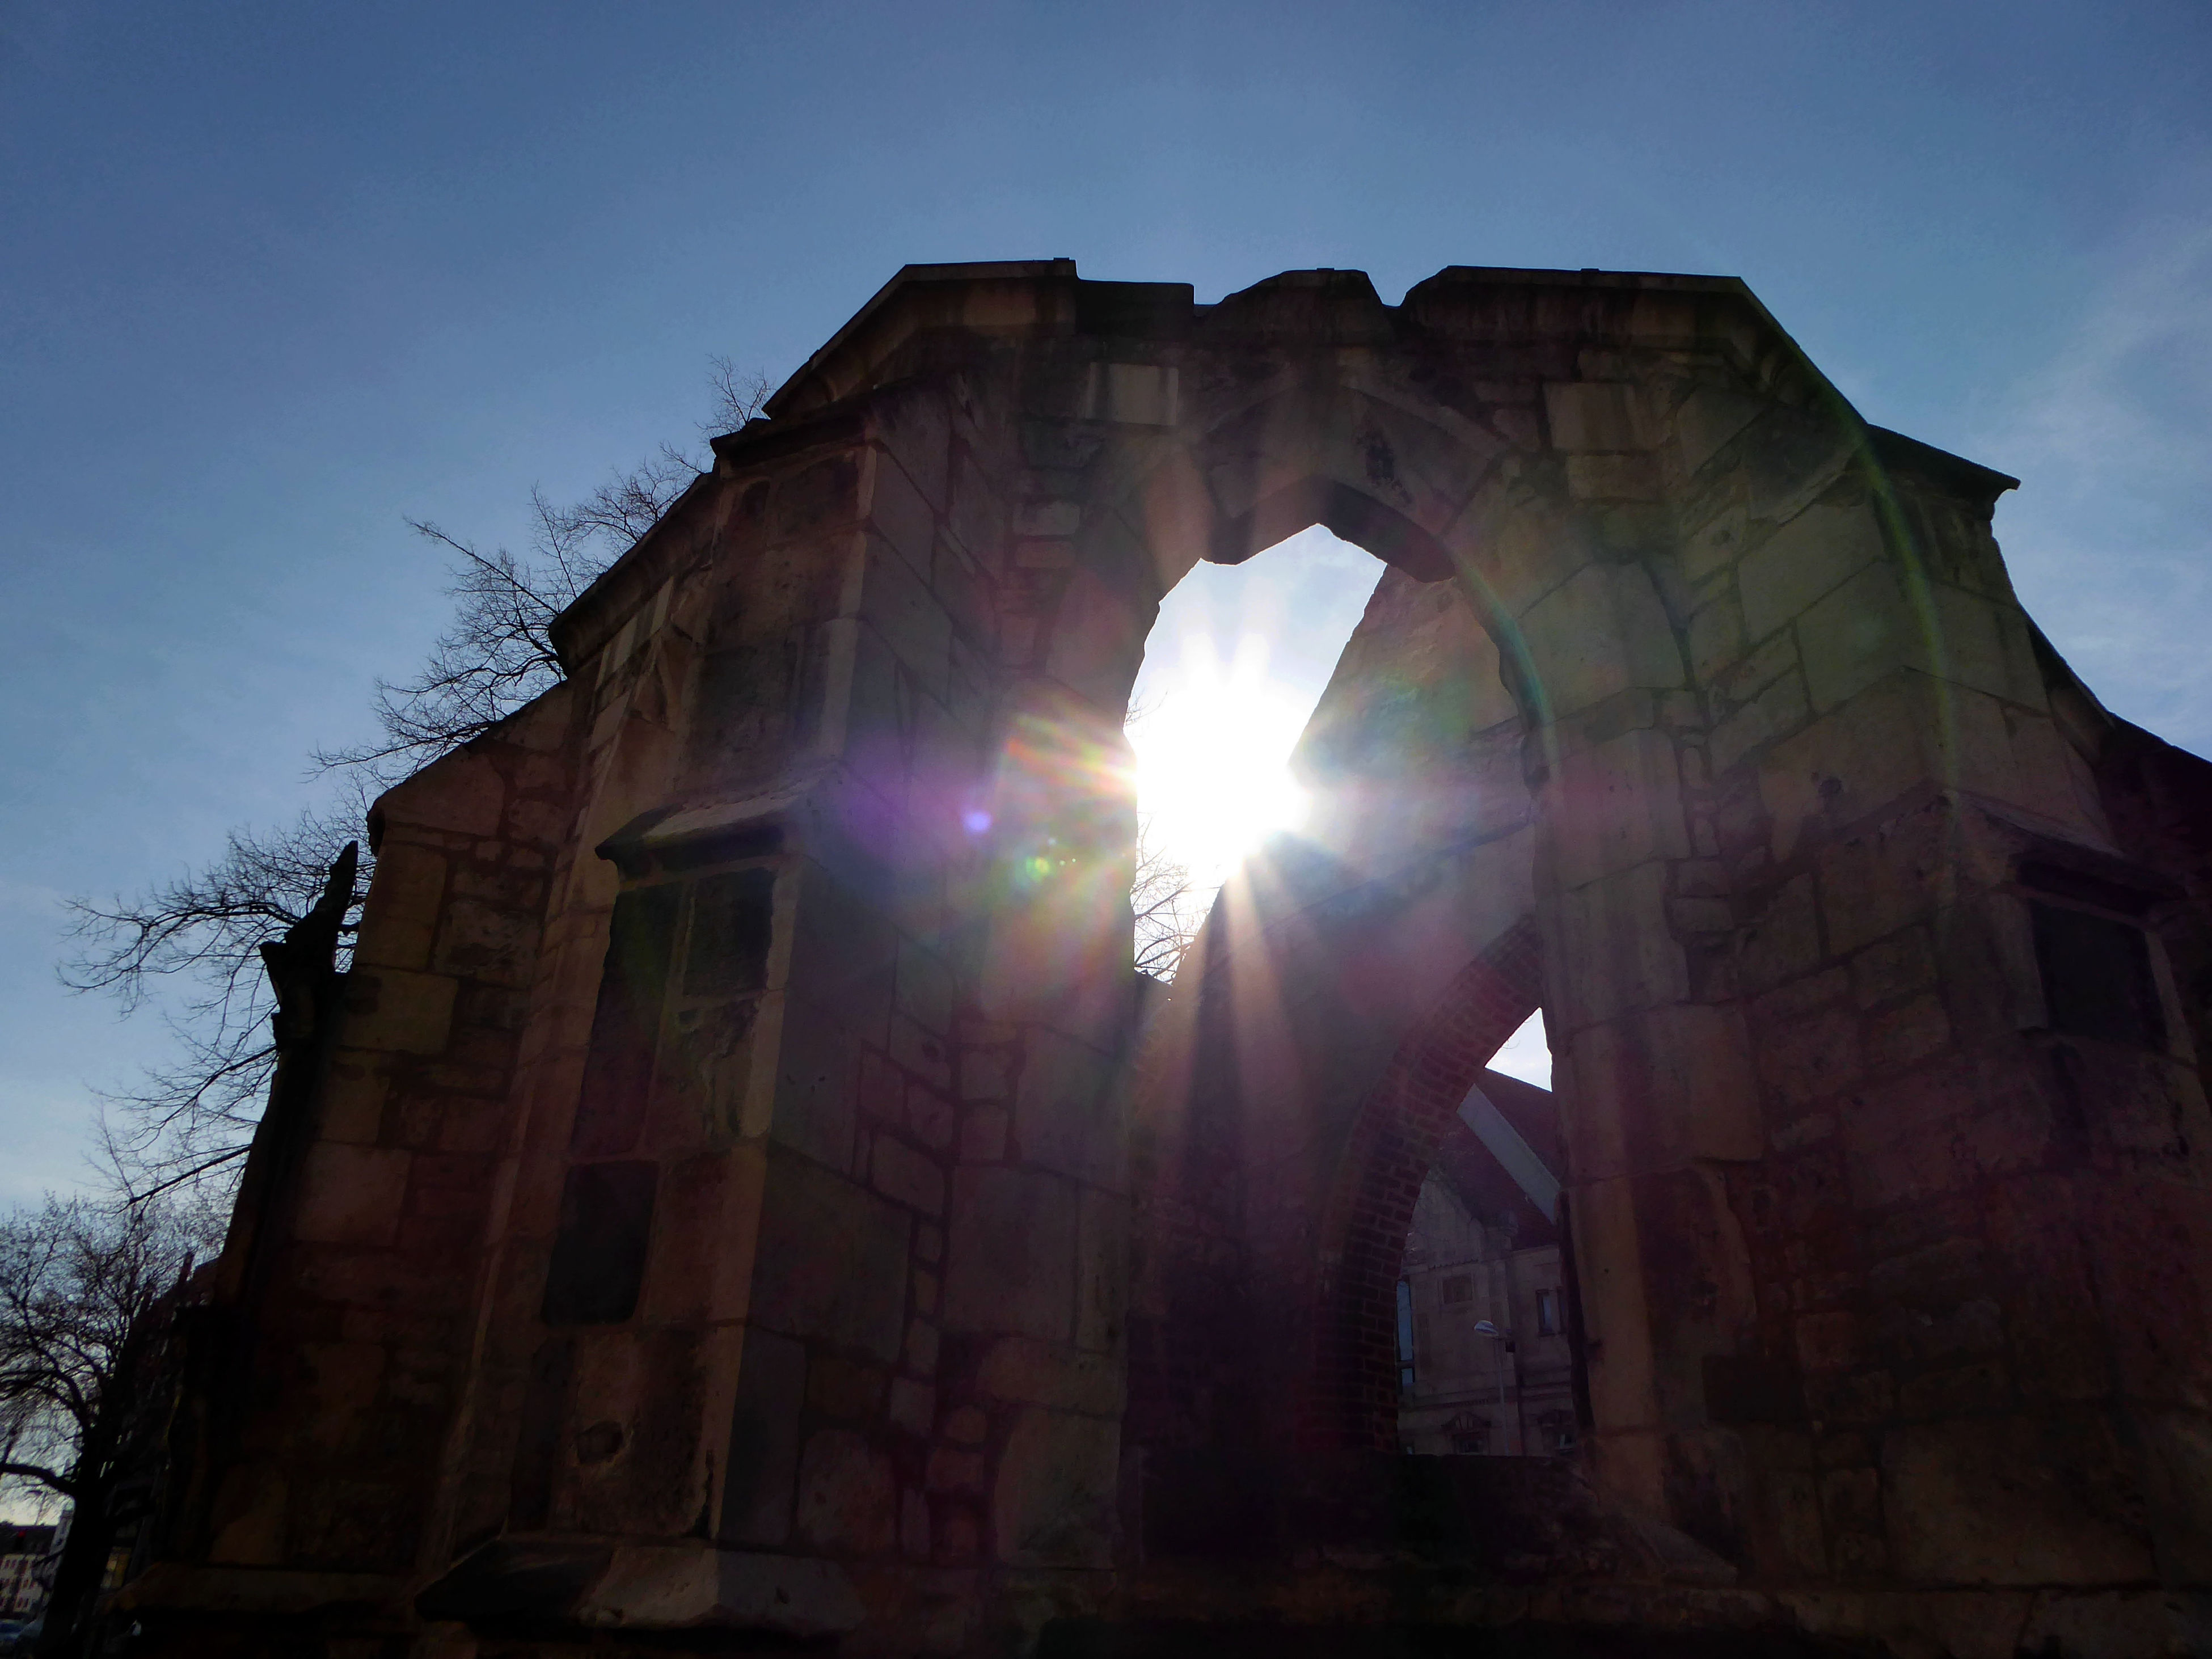 Sunbeams Through The Ruin😍 Sunlight Sunny Day In Spring😍 Bicycling Favorite Places Idyllic For My Friends 😍😘🎁 Ruins Still Beautiful Tranquil Scene Simple Beauty Beauty In Nature Tranquility Looking Up😍 Sunbeamlovers Sunbeam Capture The Moment Lensflare Photo Love Lensflares